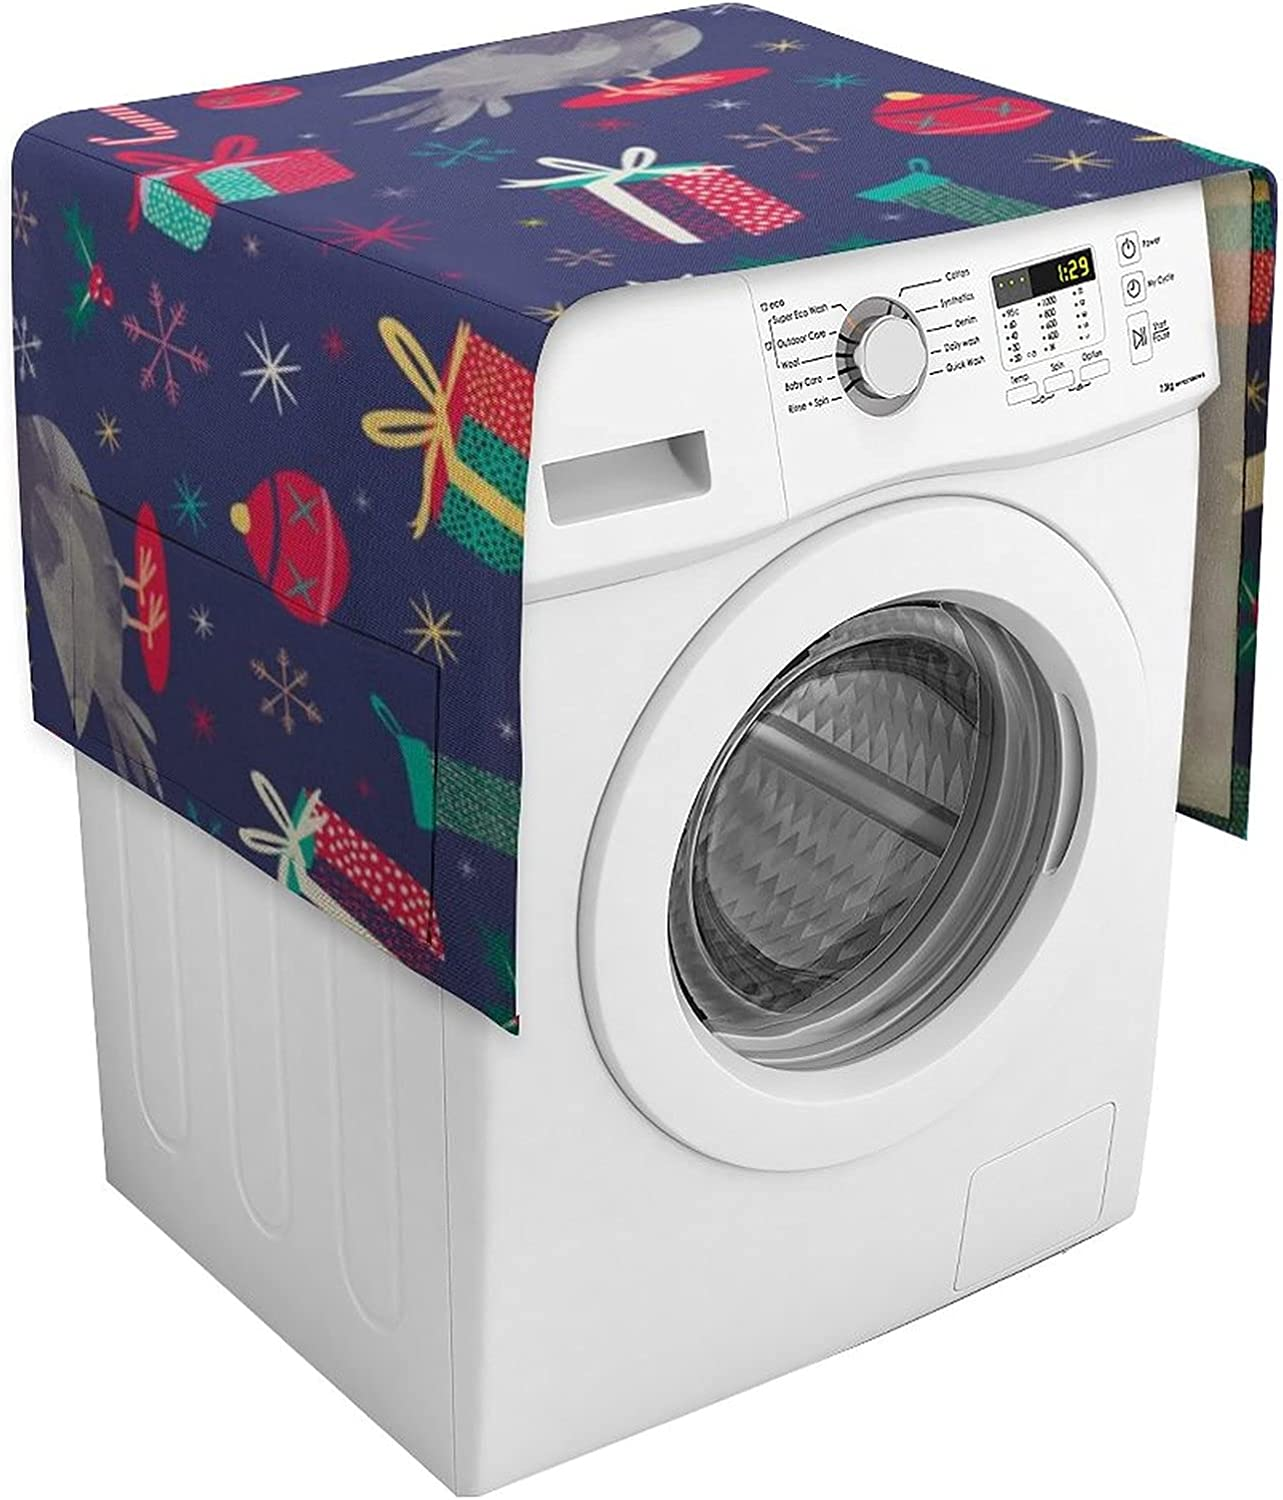 Multi-Purpose Washing Machine Covers Protector We OFFer at cheap prices Washer Appliance Fashion